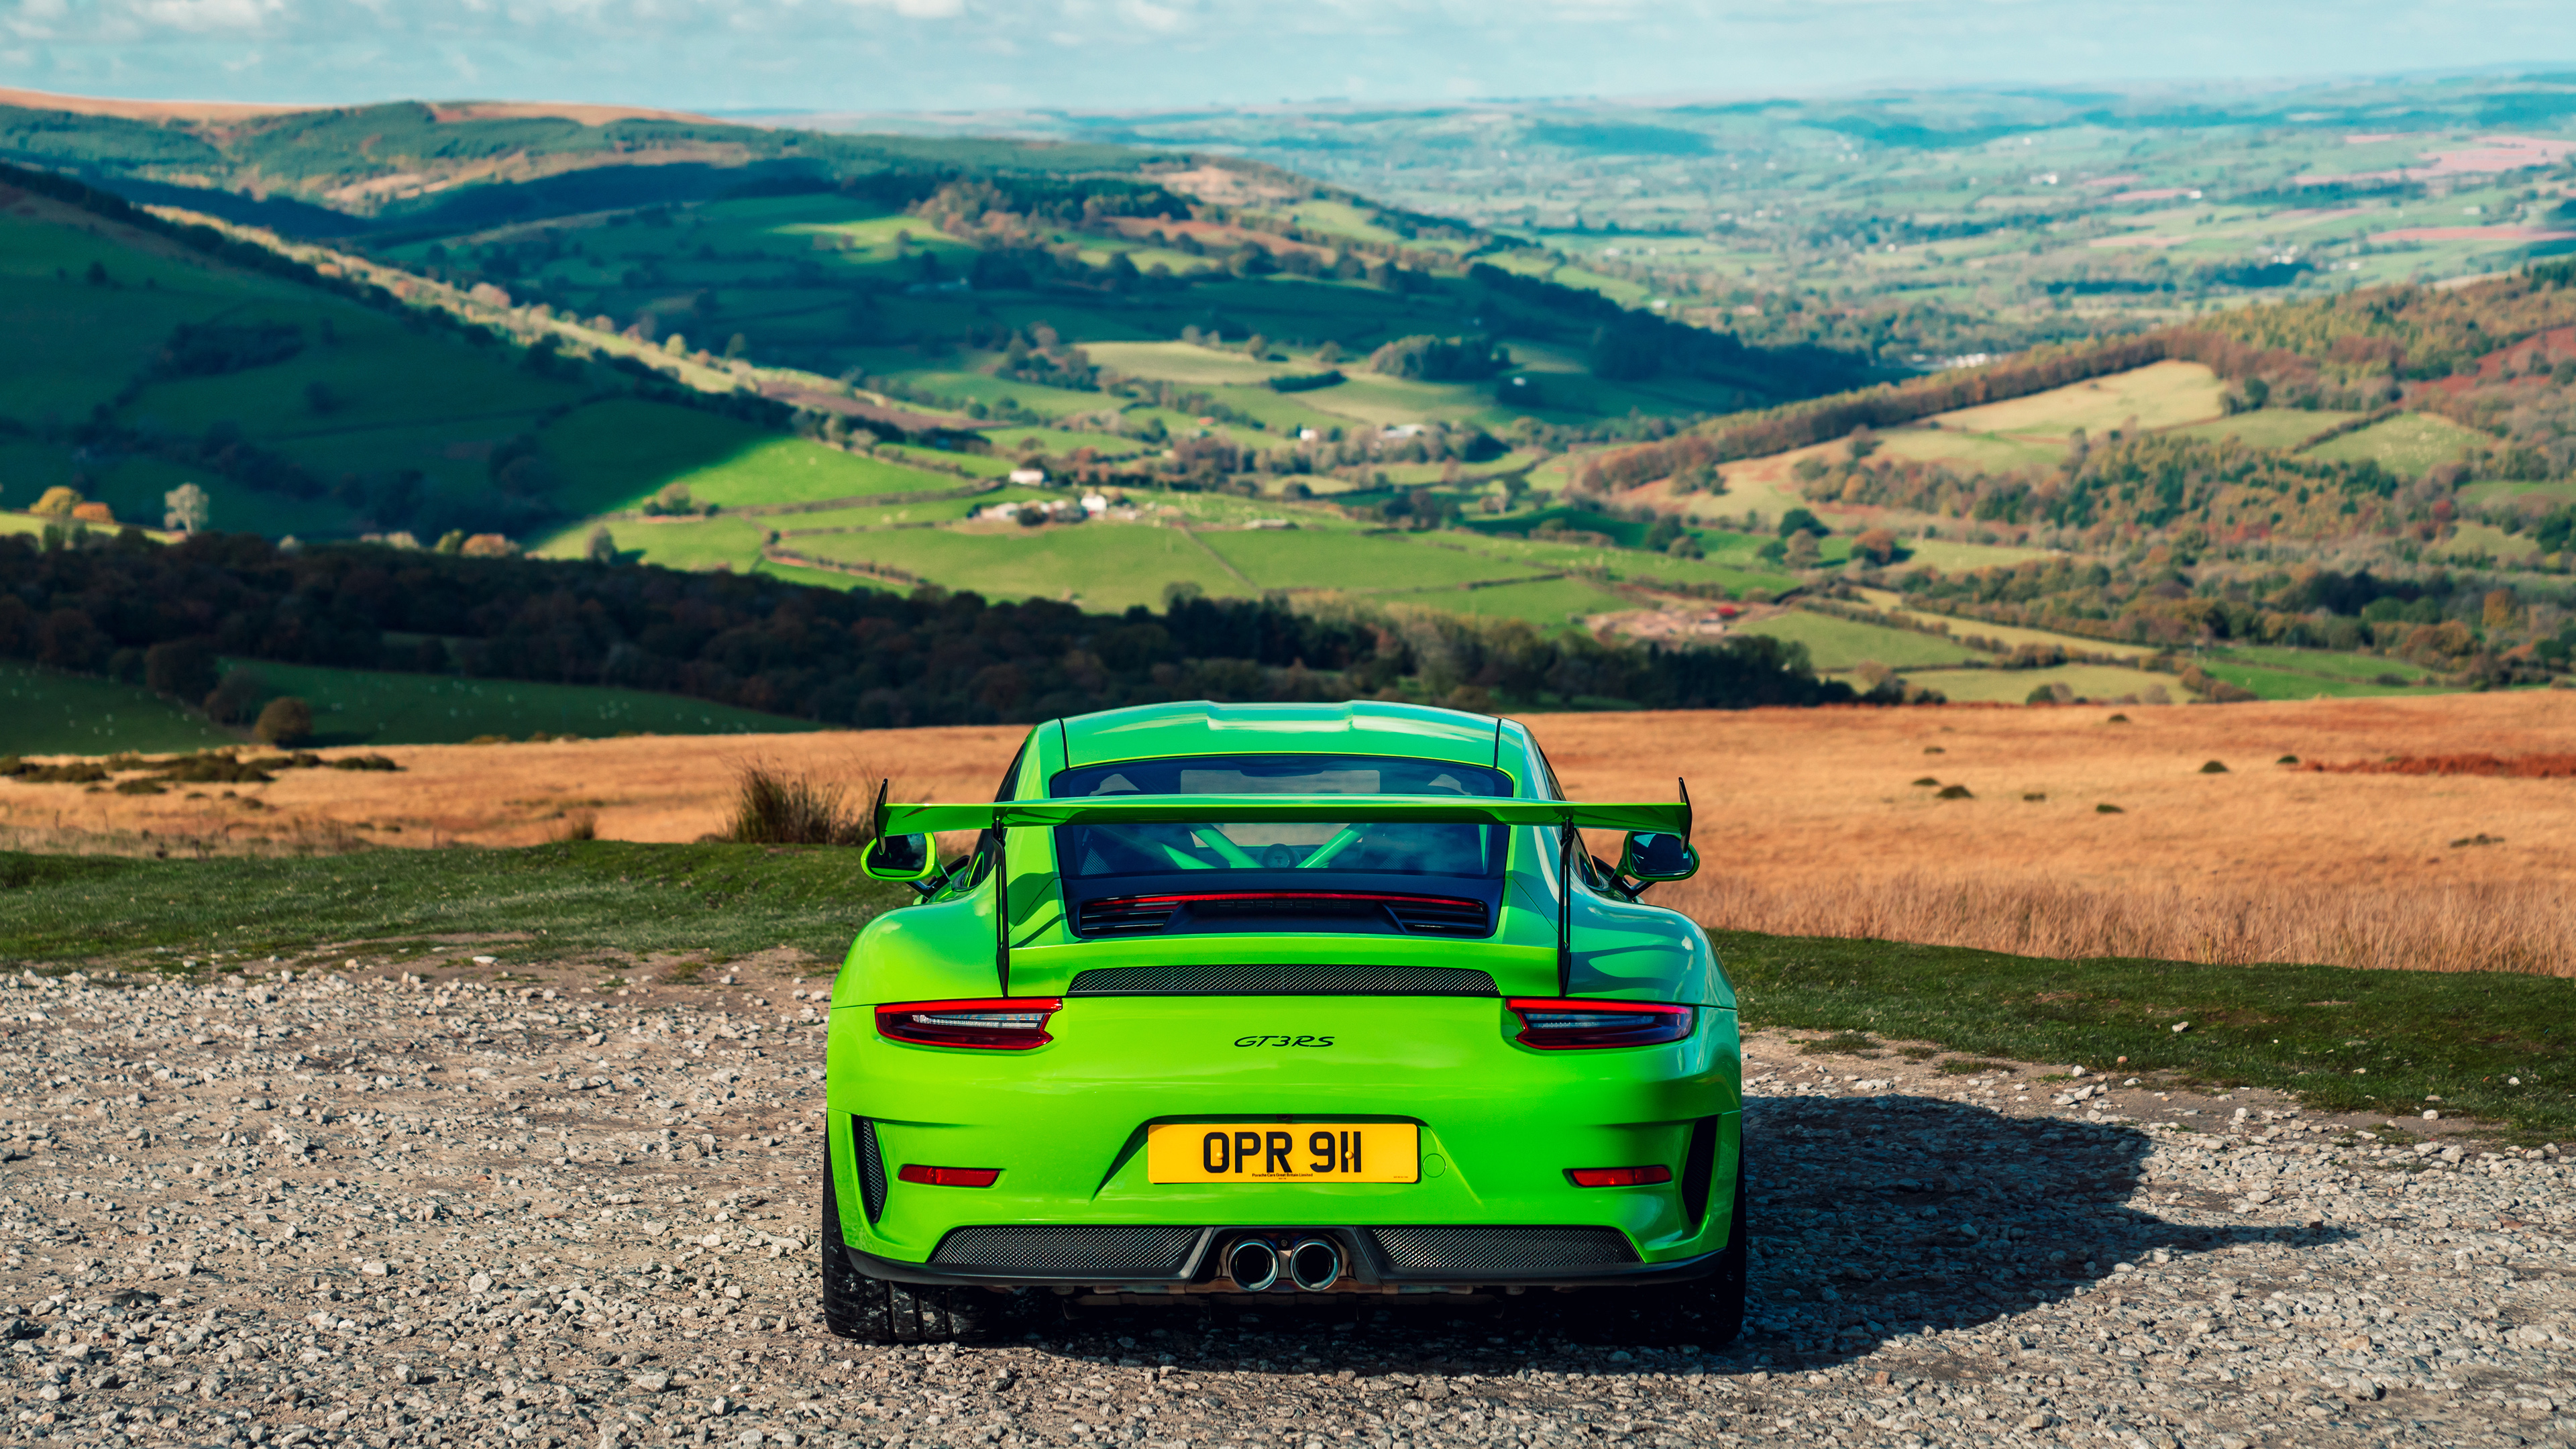 Porsche 911 Gt3 Rs 2019 4k 2 Wallpaper Hd Car Wallpapers Id 11620